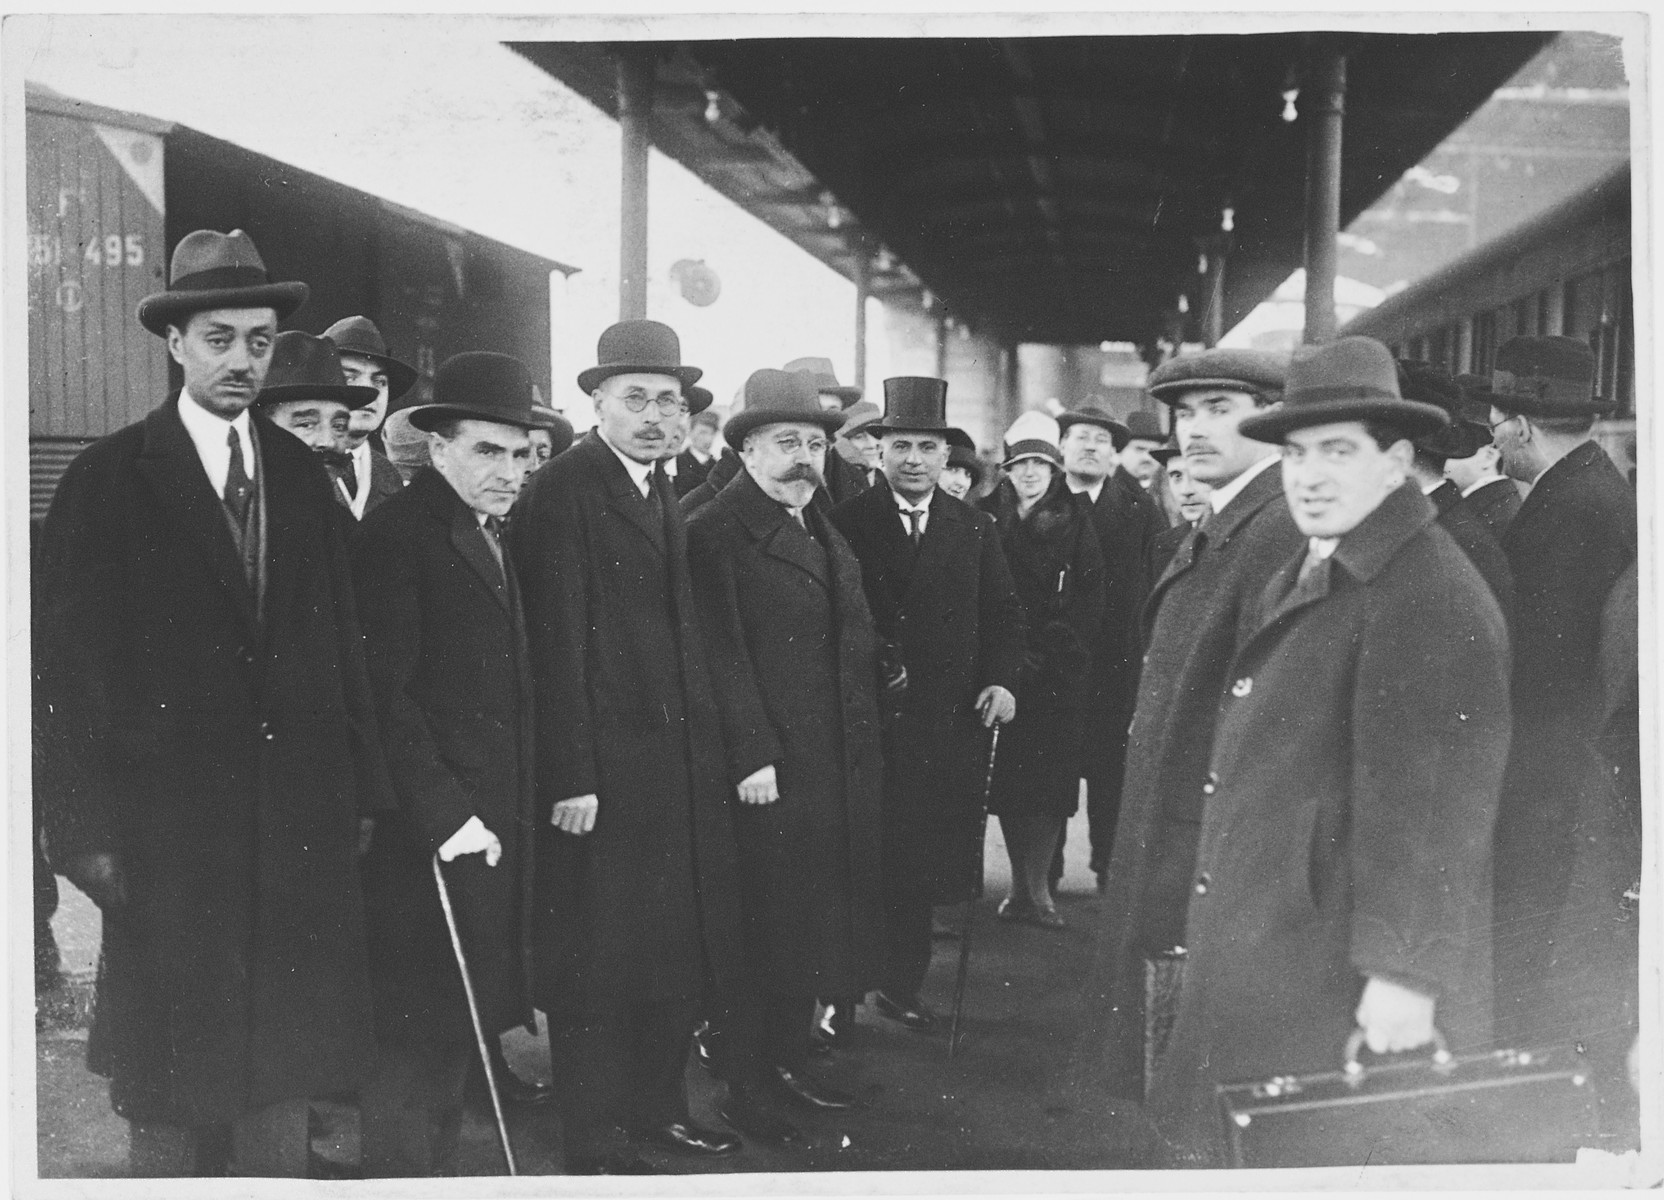 A delegation from the Soviet embassy waits at the train station in Rome to meet the new Soviet ambassador.  Among those pictured are Samuel and Sophia Pevsner.  Samuel defected shortly thereafter.